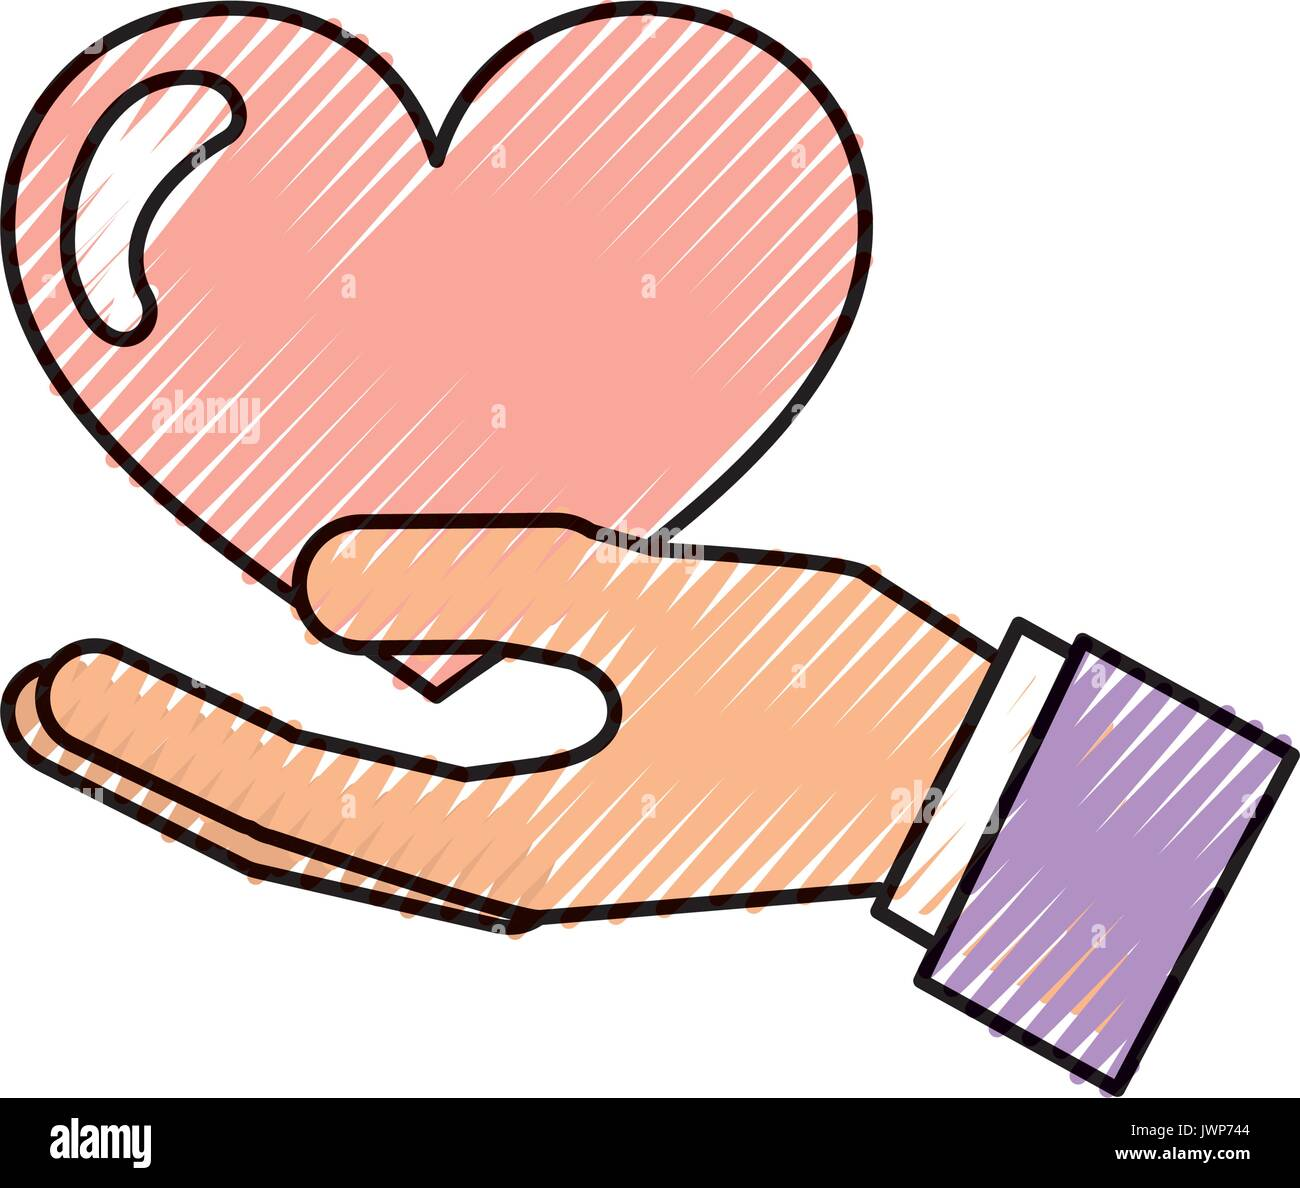 hand human with heart love - Stock Vector